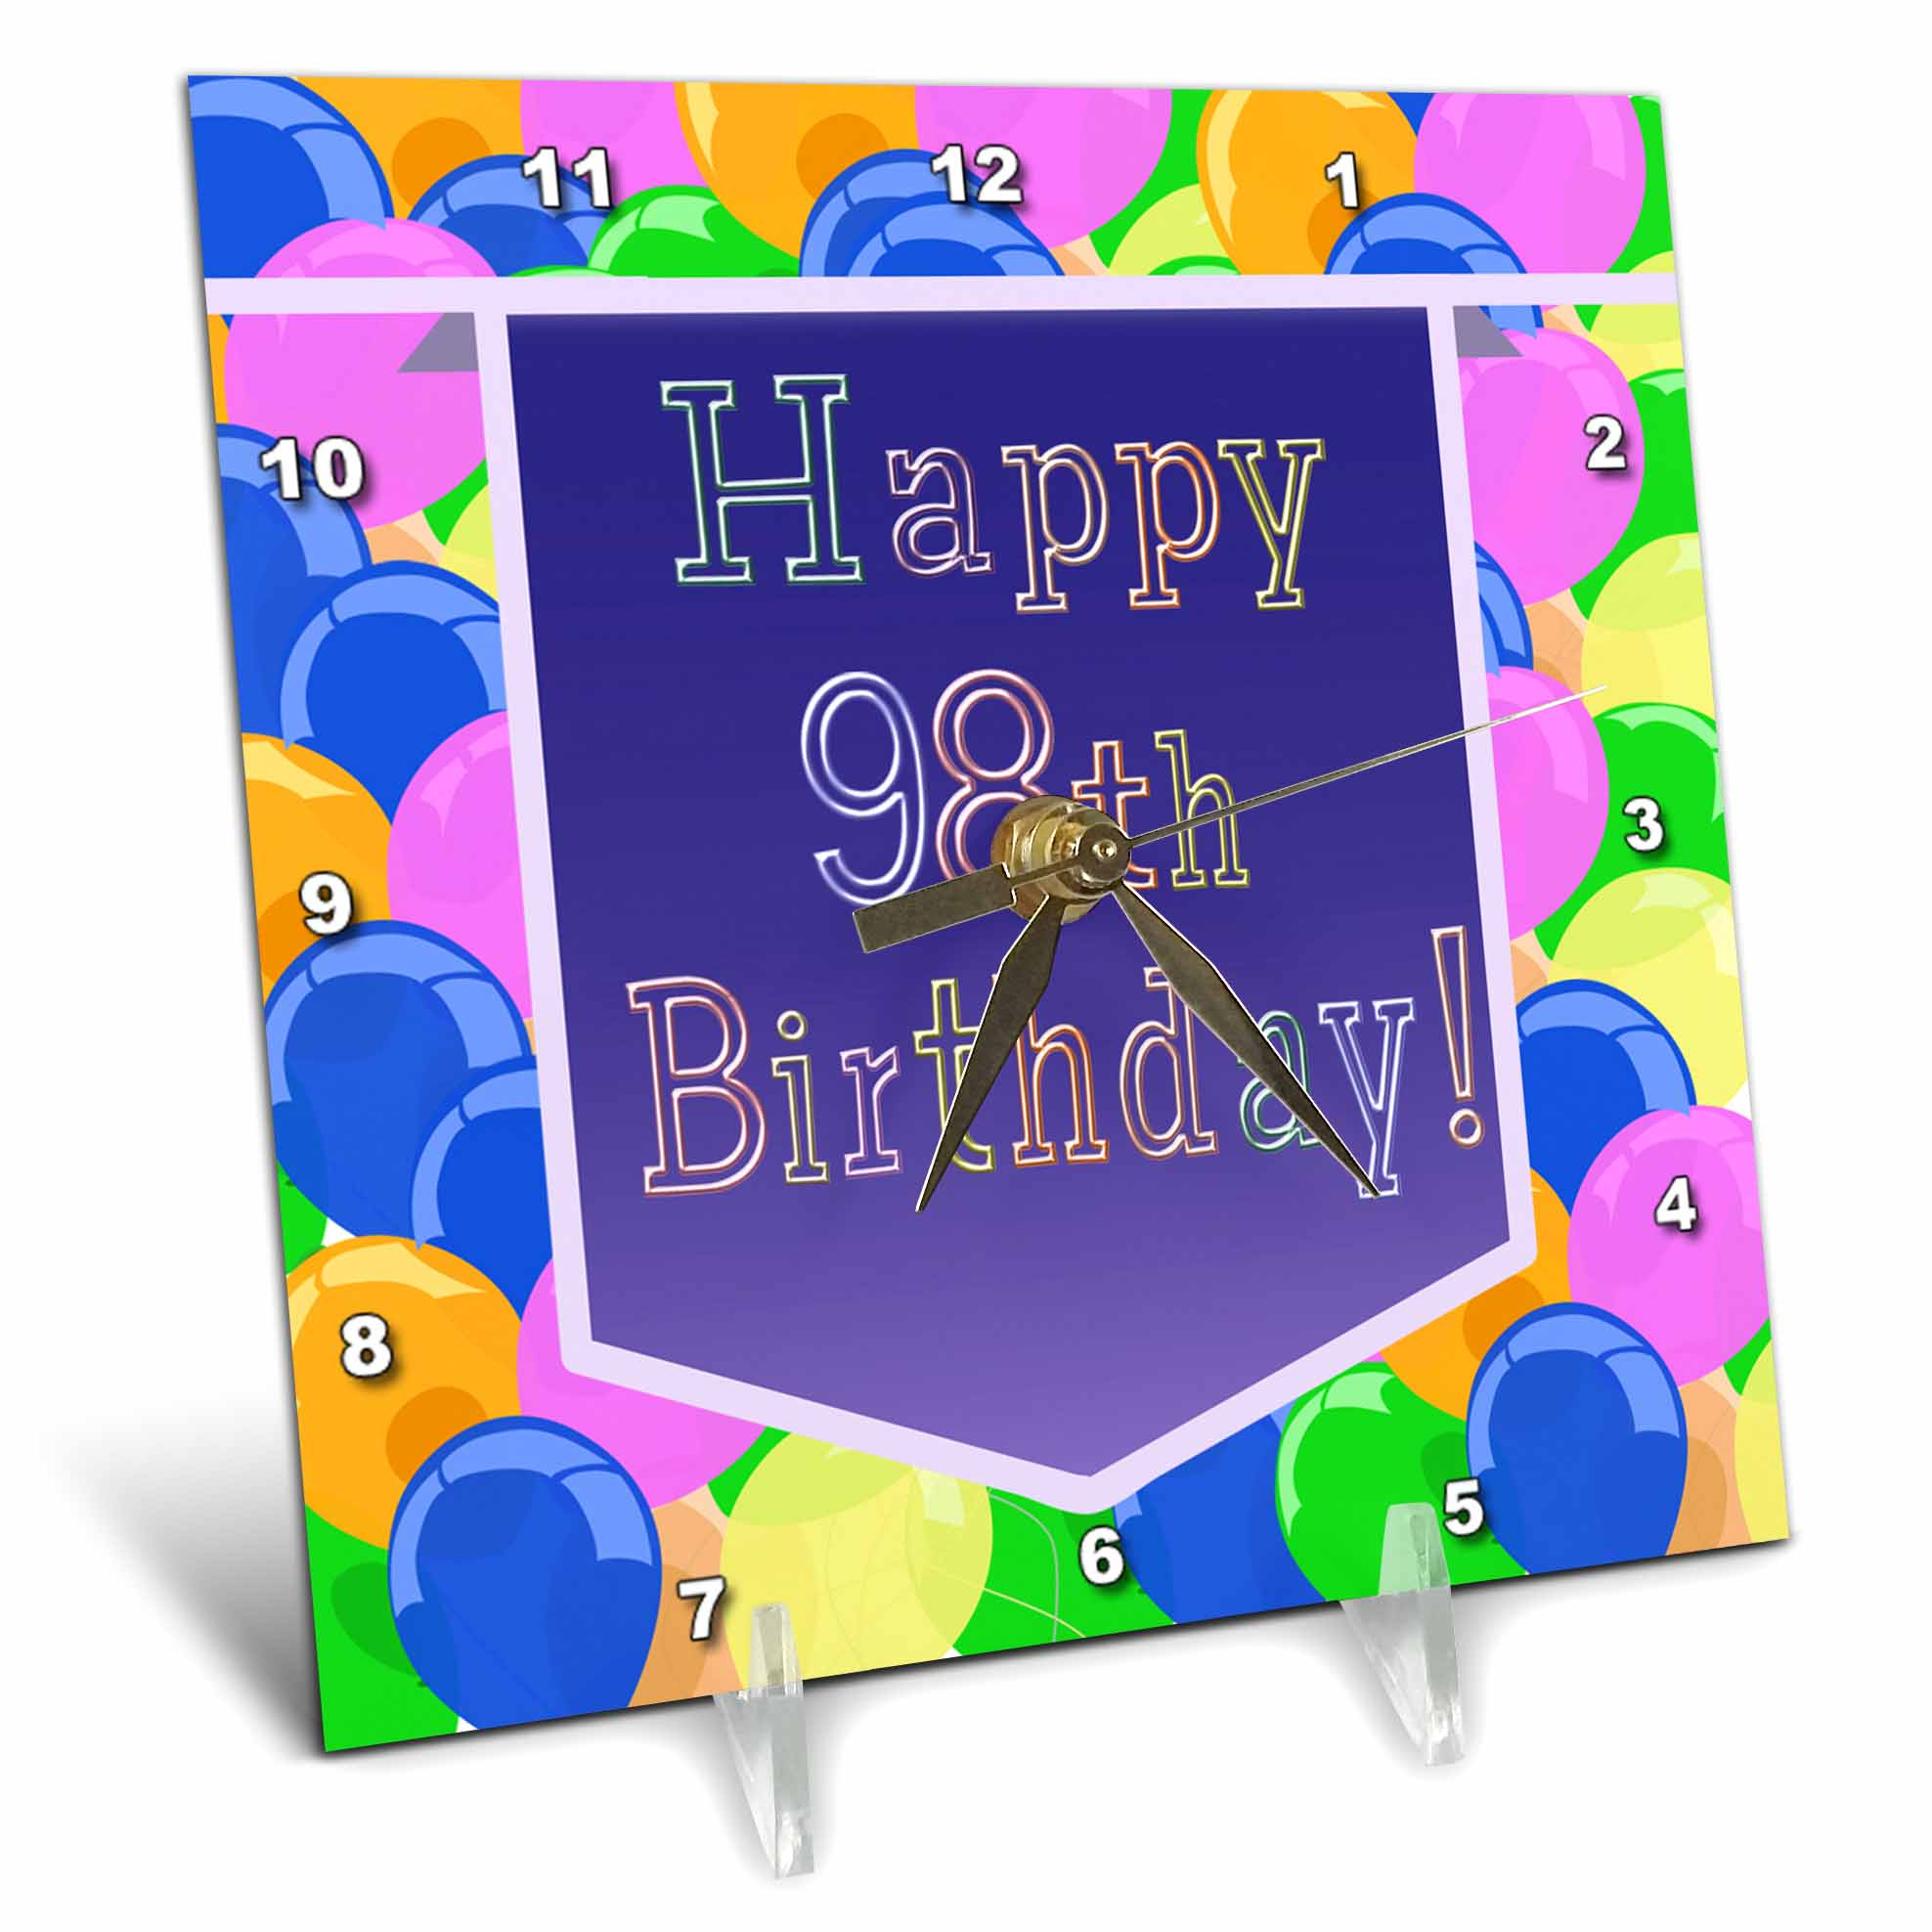 3dRose Balloons with Purple Banner Happy 98th Birthday, Desk Clock, 6 by 6-inch